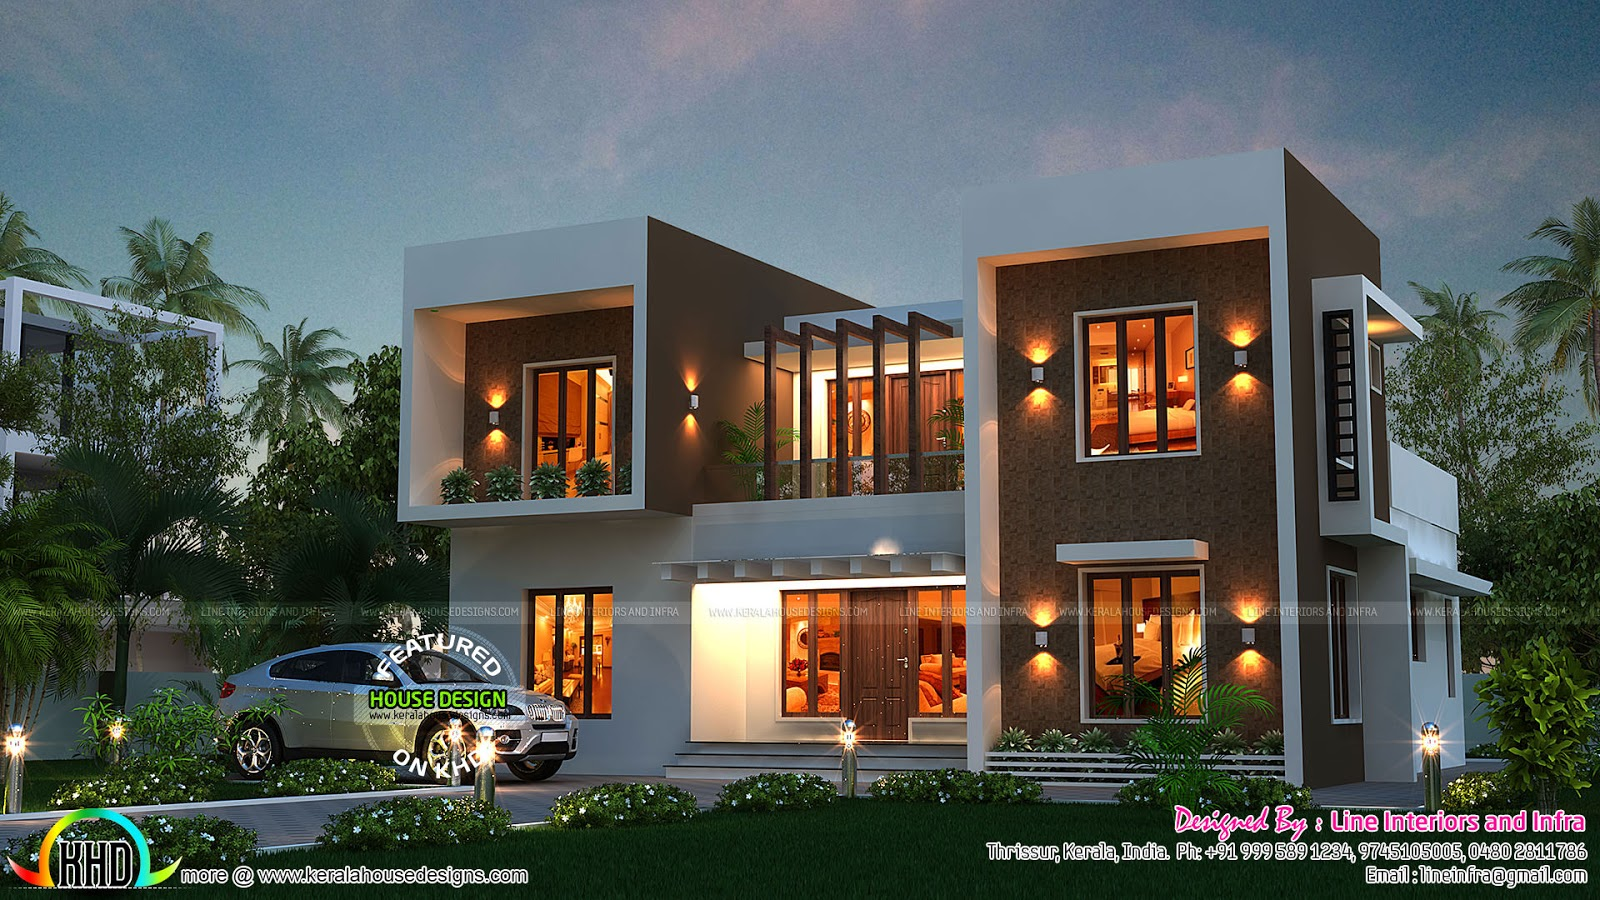 Stunning box type home kerala home design and floor plans for House model design photos